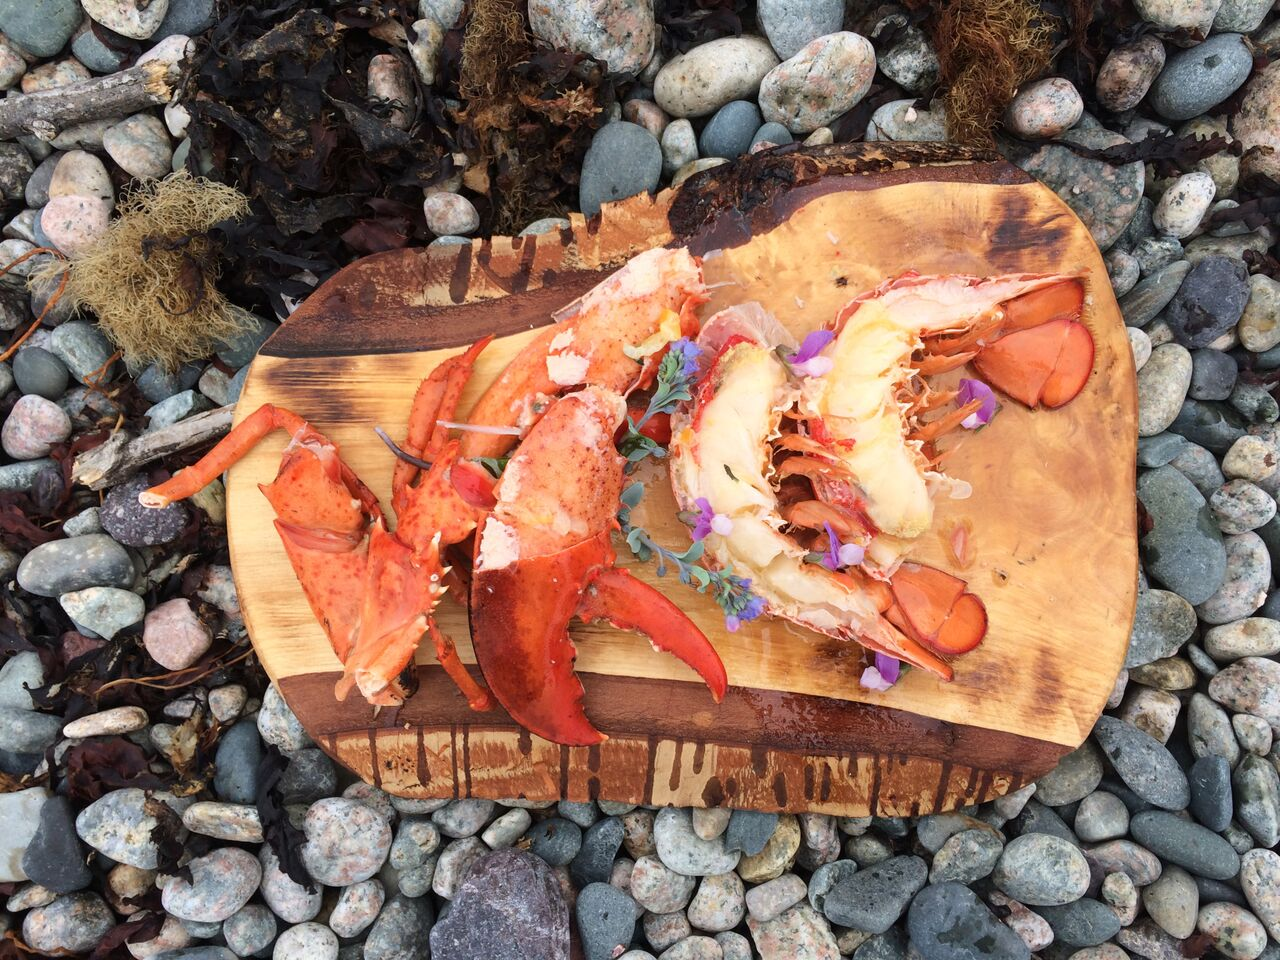 Lobster & Lovage - Lobster season here is something we look forward to every Spring and with such a very short window to taste our own Newfoundland Lobster, don't miss out! Join us on the beach for a workshop during one of the most exciting seasons of the year!We'll start our day with a foraging walk across the beach to gather some beautiful spring edibles to add to our Lobster. Once we've enjoyed our beach walk along the seashore we'll head back to the Cod Sounds HQ to light the fire and gather round for some tips on cooking these crustaceans.You'll learn about the many preparations of our heritage foods here at the camp and even make some treats to take home with you.From the beginning to the end of our meal everyone will be involved in making it all go round :) Preparing a lobster for your plate is messy business so be prepared to roll up your sleeves and learn how to coax out of the shell, some of the most beautiful seafood from the sea.